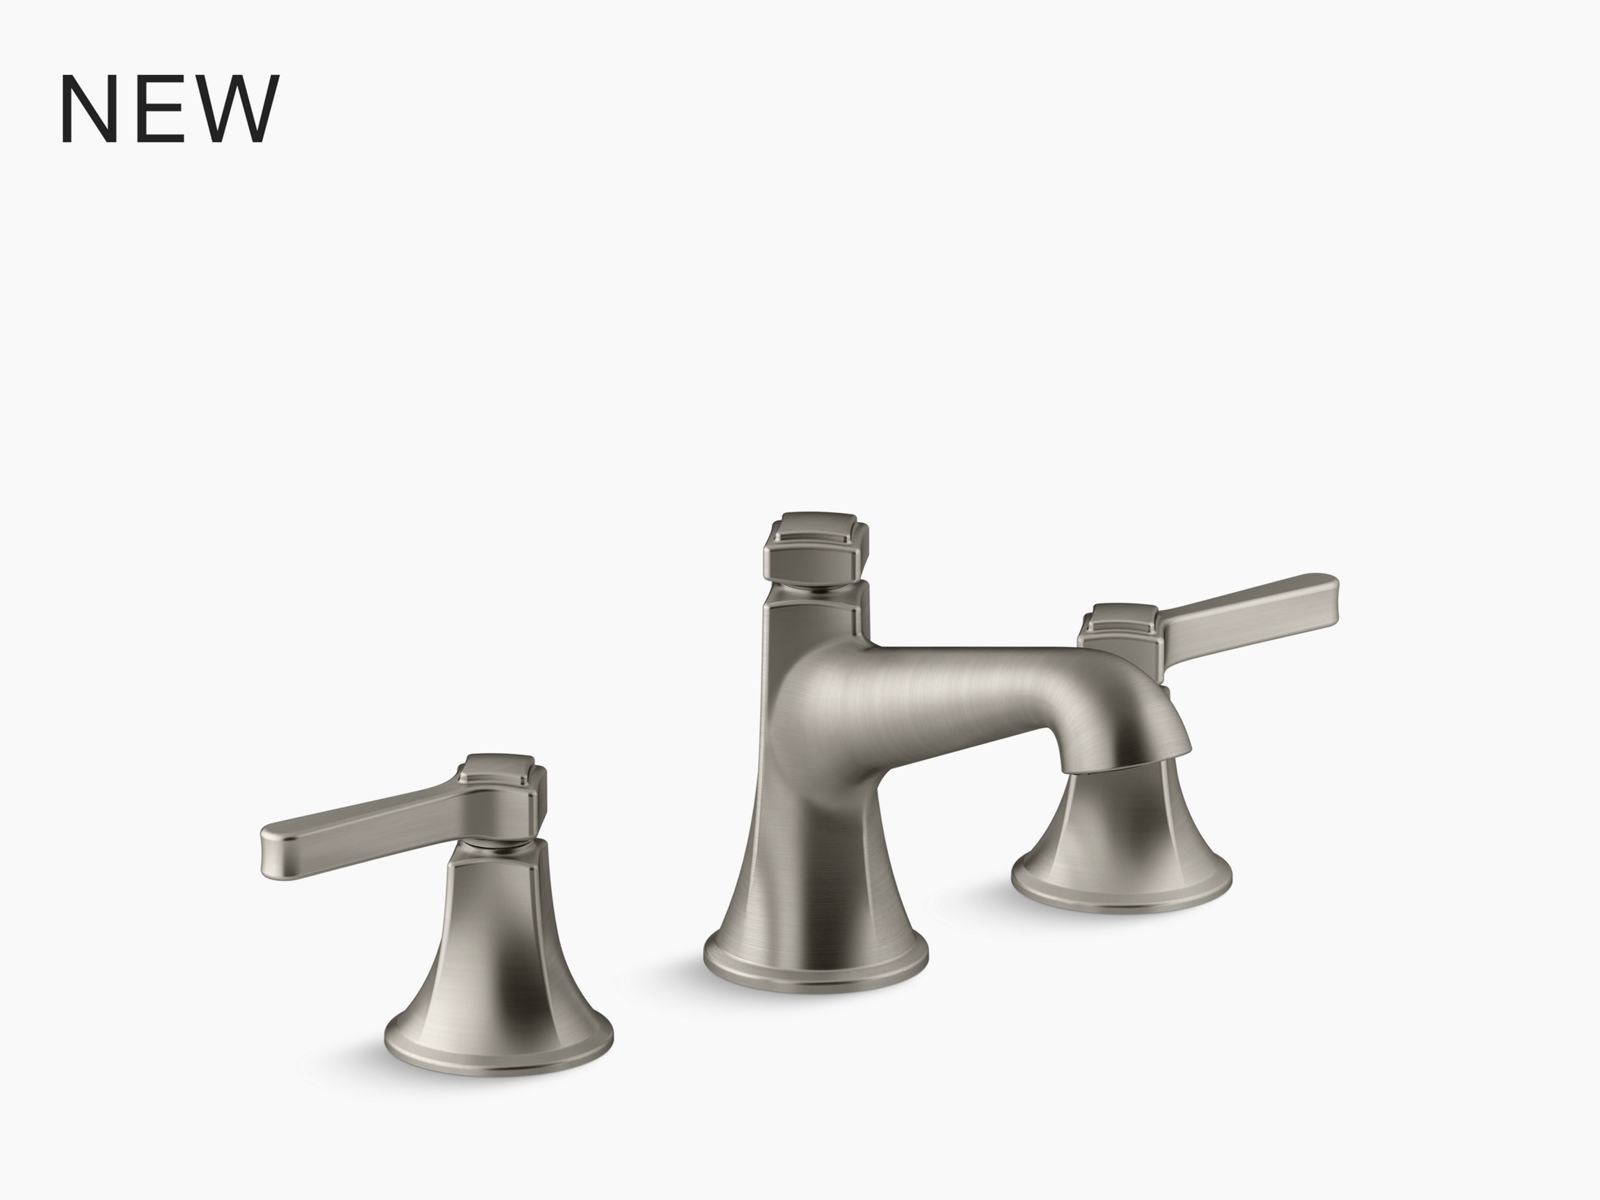 artifacts deck mount bridge kitchen sink faucet with prong handles and sidespray